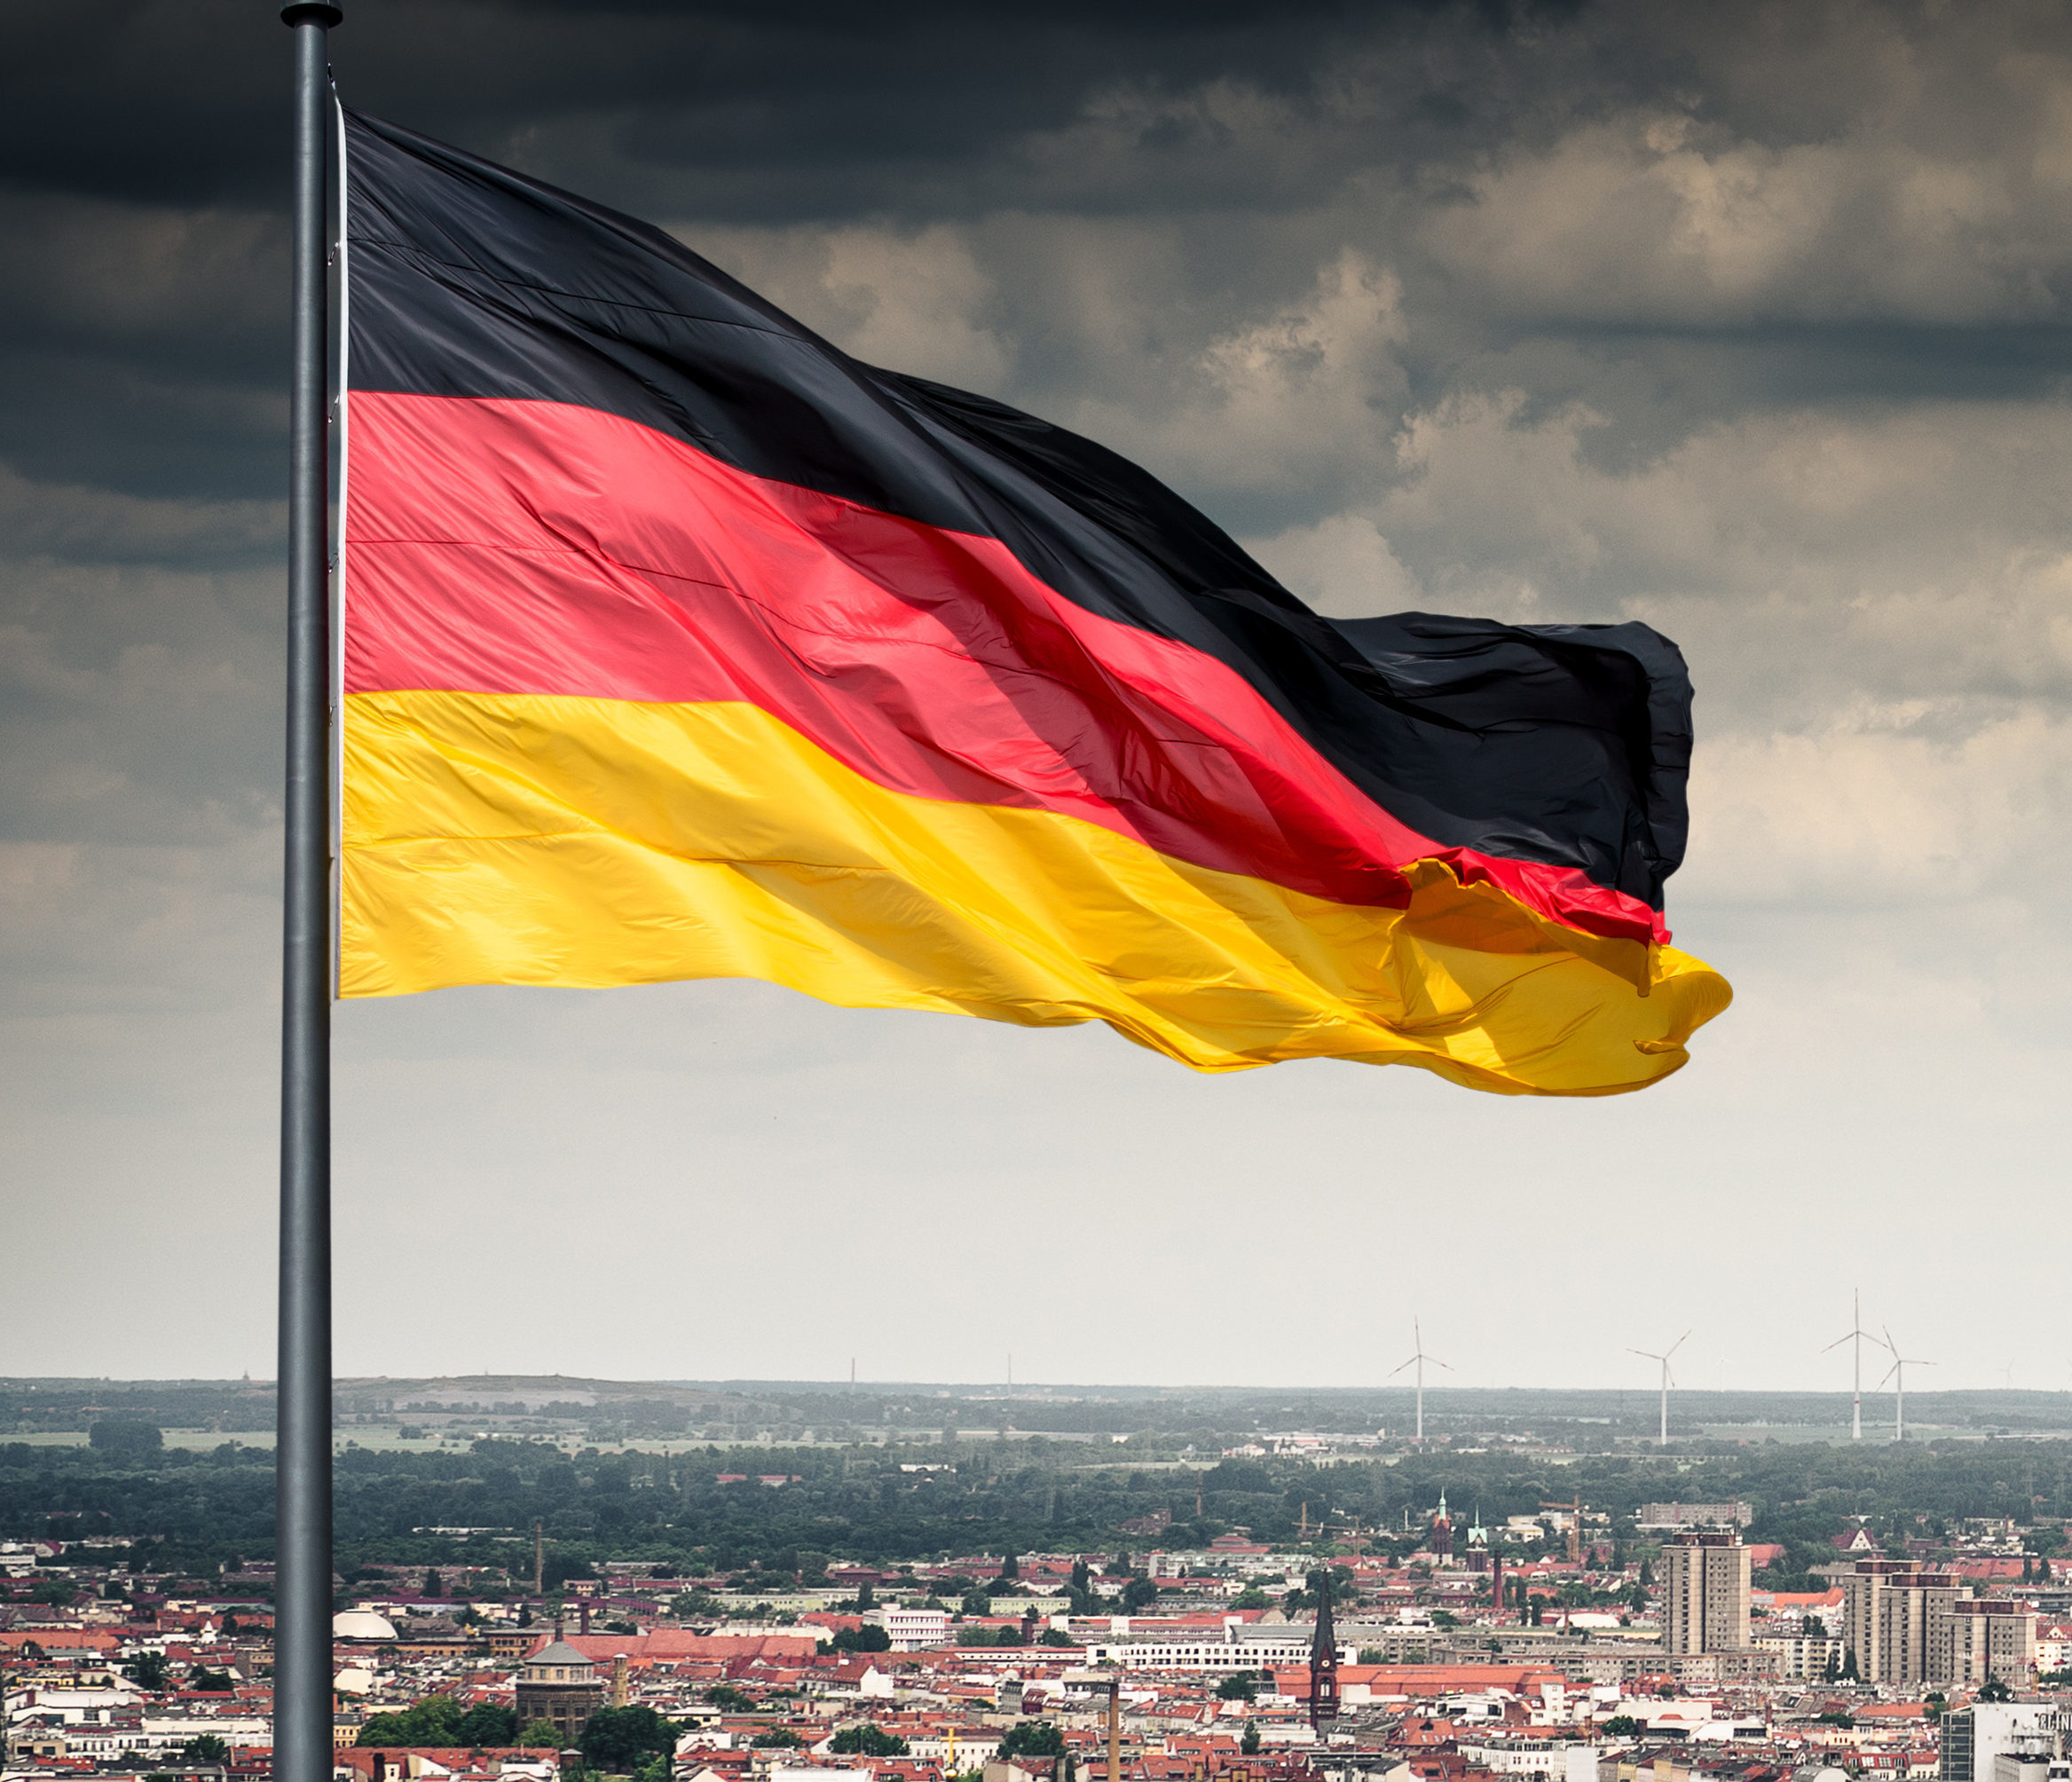 Performance fee disclosure in Germany